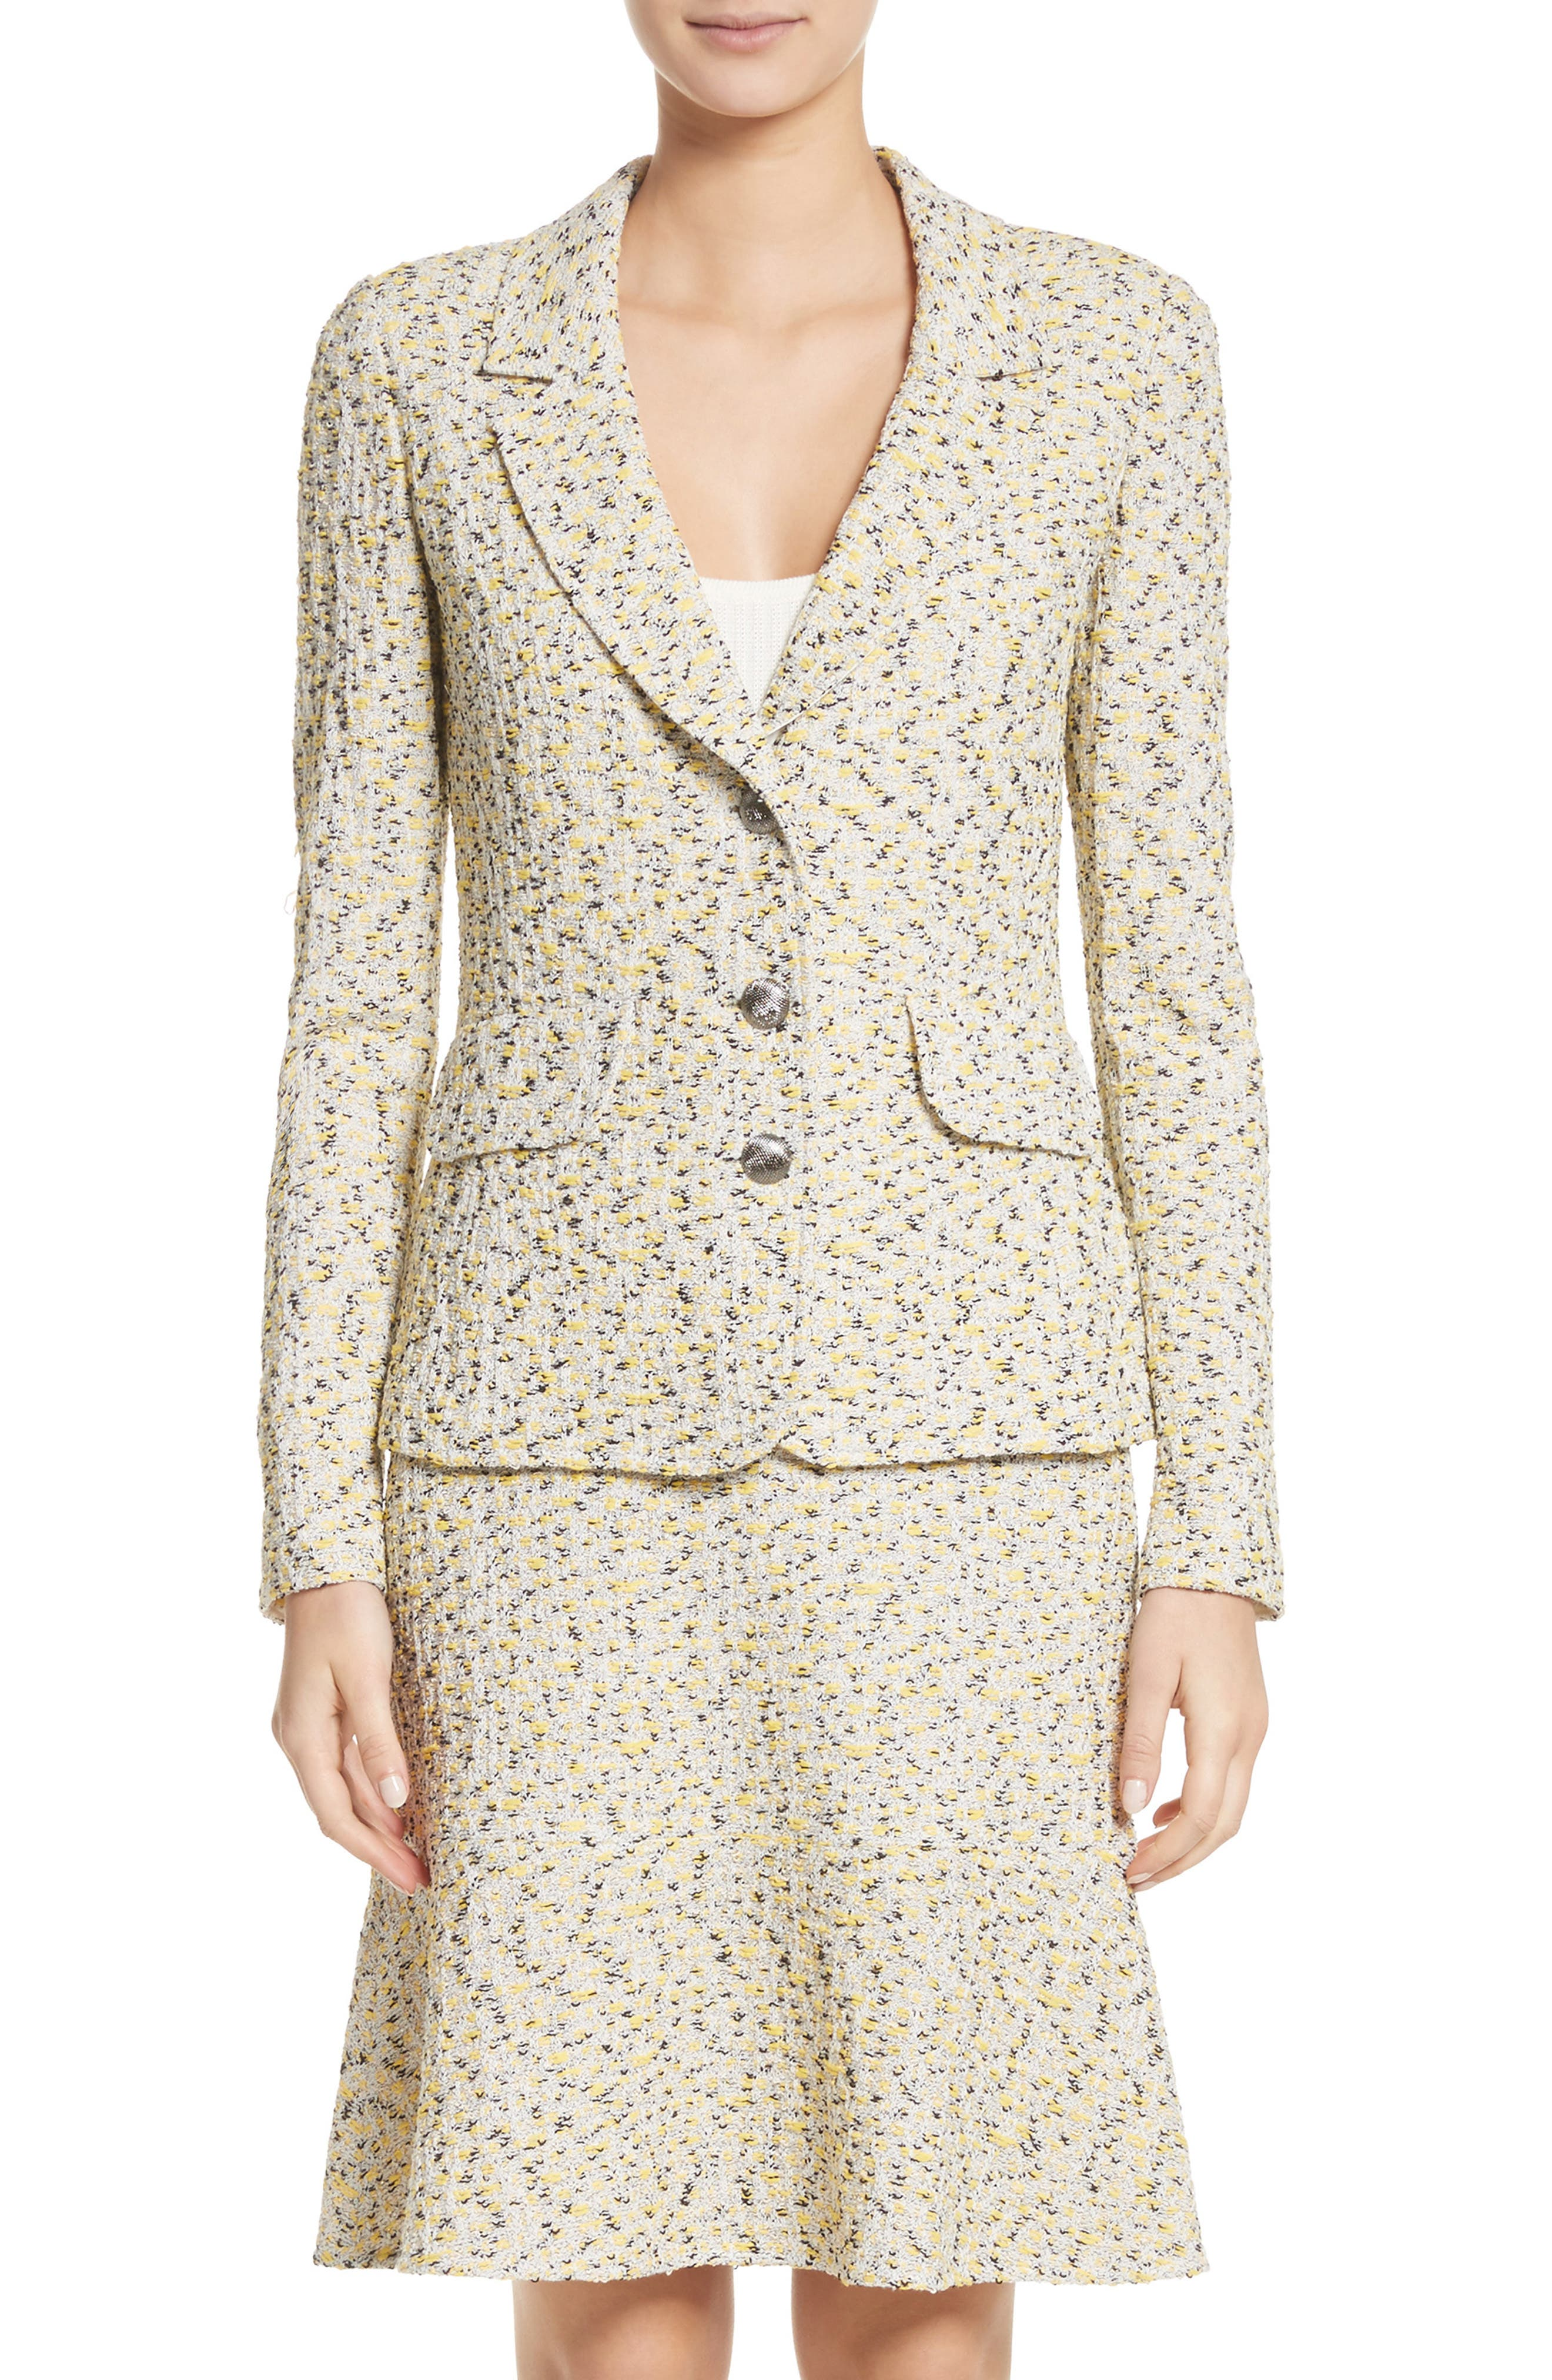 Alternate Image 1 Selected - St. John Collection Romee Tweed Knit Blazer